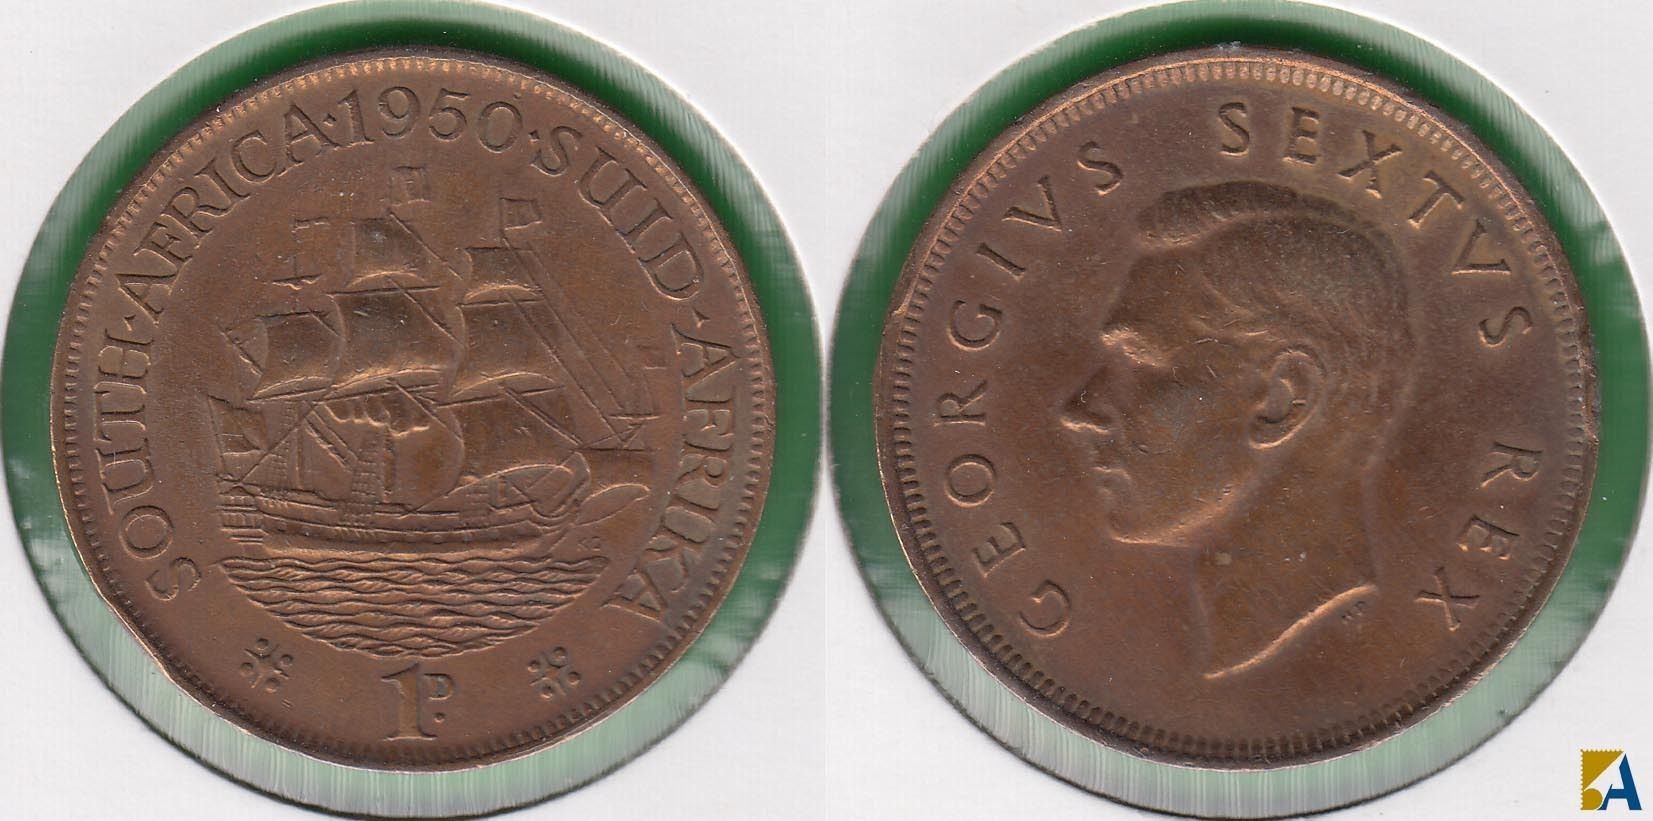 SUDAFRICA - SOUTH AFRICA. 1 PENIQUE (PENNY) DE 1950.